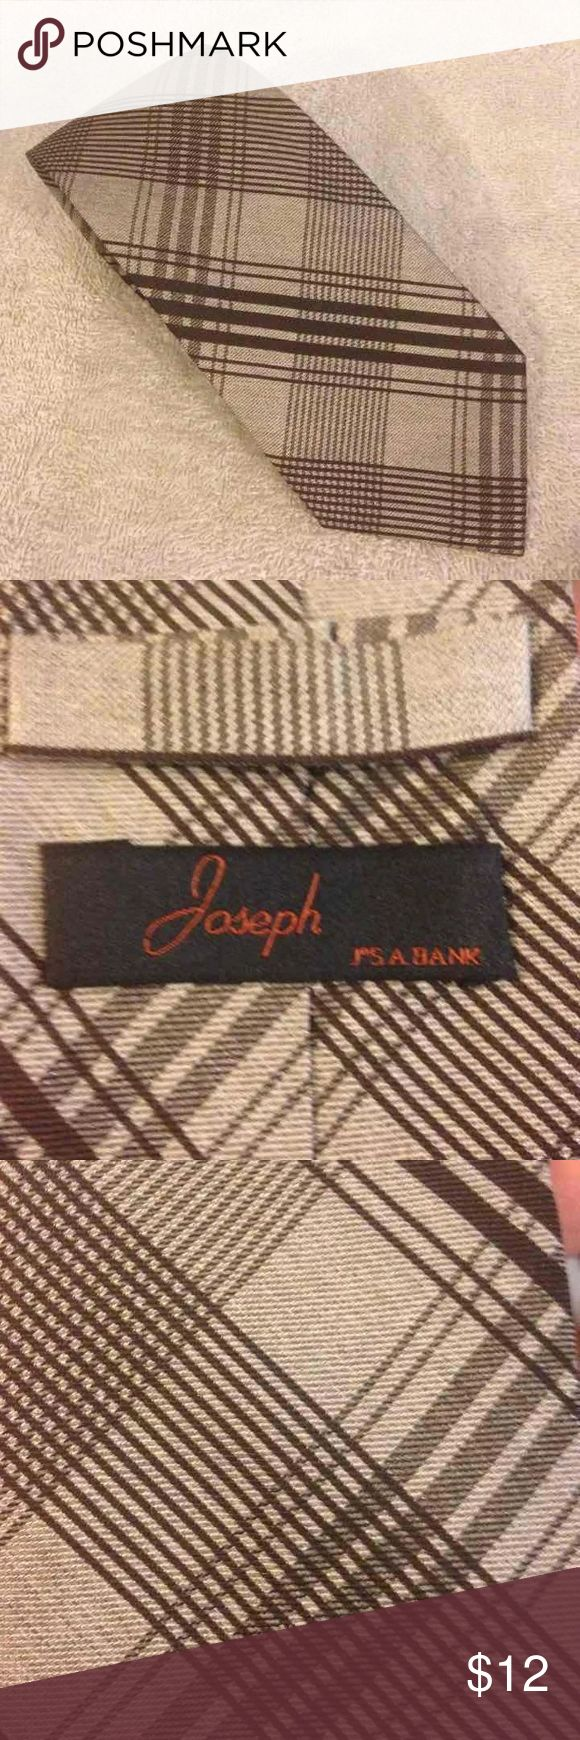 Jos A Bank NEW Brown & Tan Plaid Tie Joseph By Jos A Bank Tan and Brown Plaid Silk Necktie! NEW WITHOUT TAGS! Please make reasonable offers and bundle! Jos. A. Bank Accessories Ties